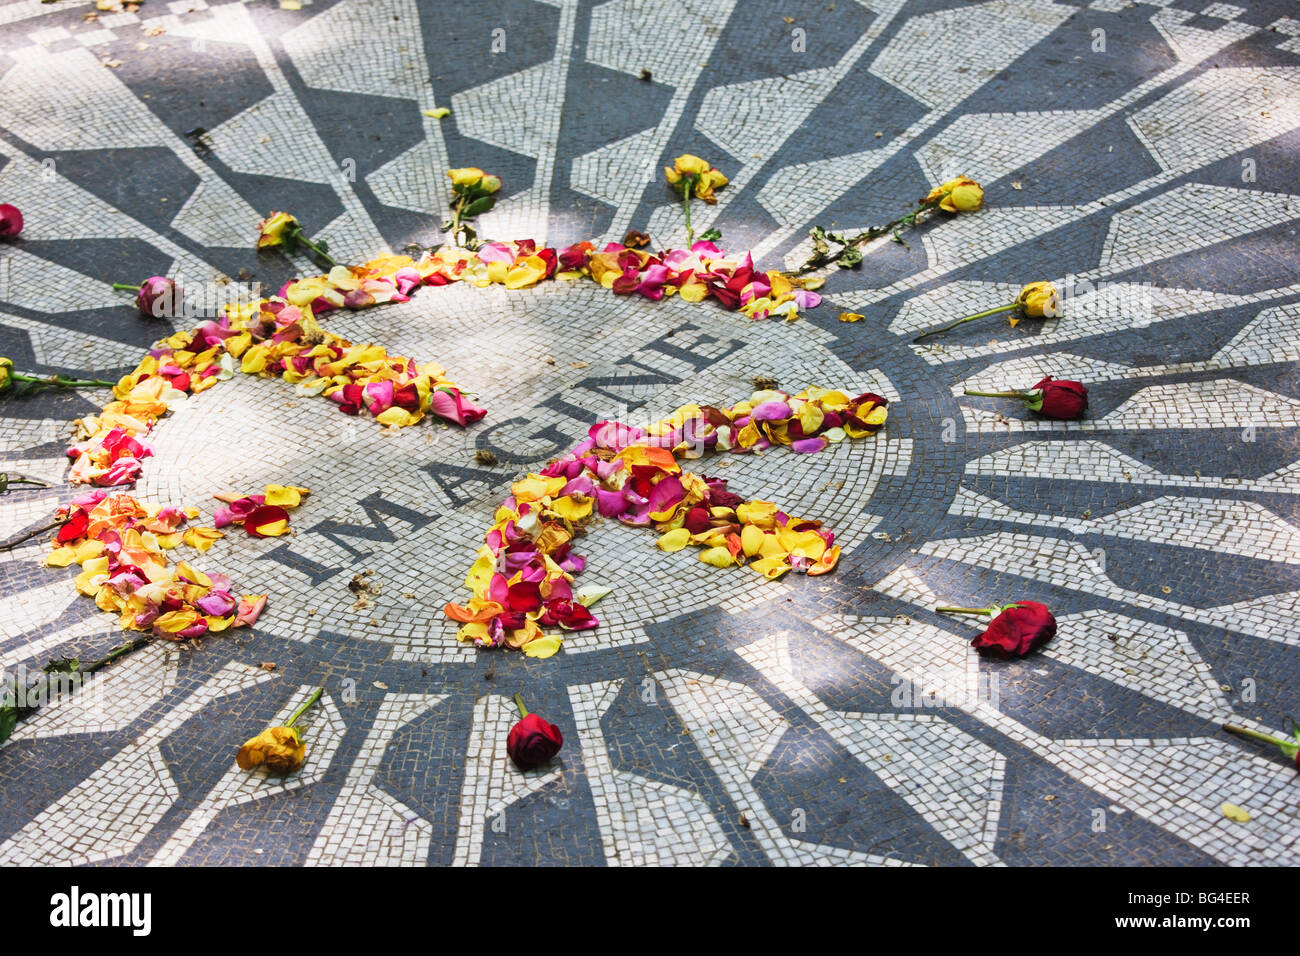 Imagine mosaico memorial de John Lennon, Strawberry Fields, Central Park, Manhattan, Ciudad de Nueva York, Nueva Imagen De Stock